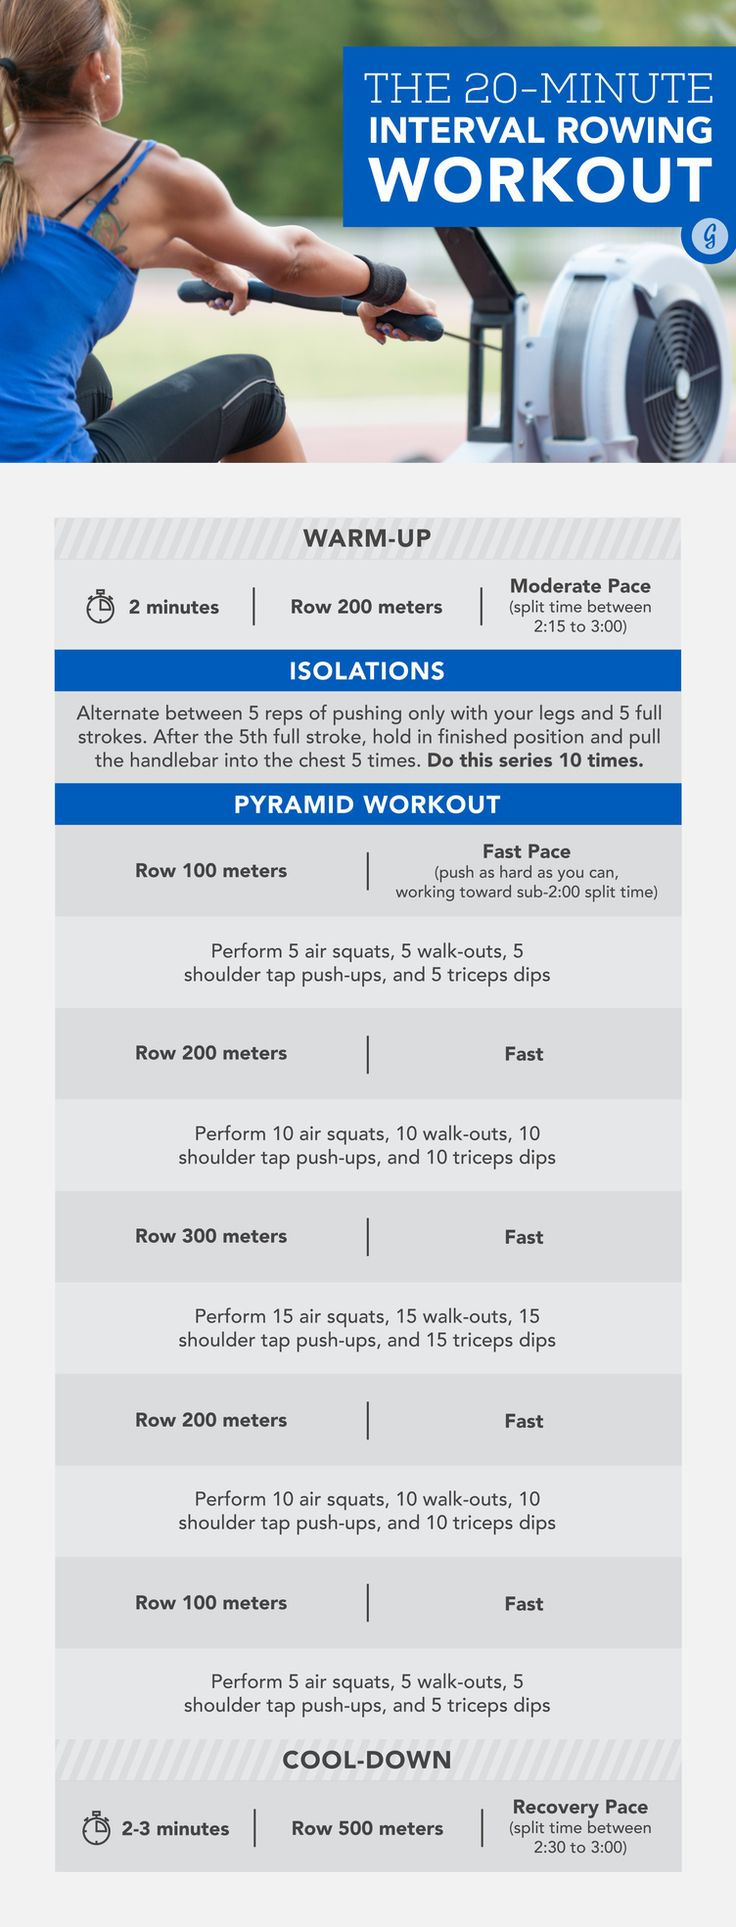 Here's a new interval rowing workout to try. Want more like this?  We've got 'em: http://ucanrow2.com/indoor-rowing-workouts/.